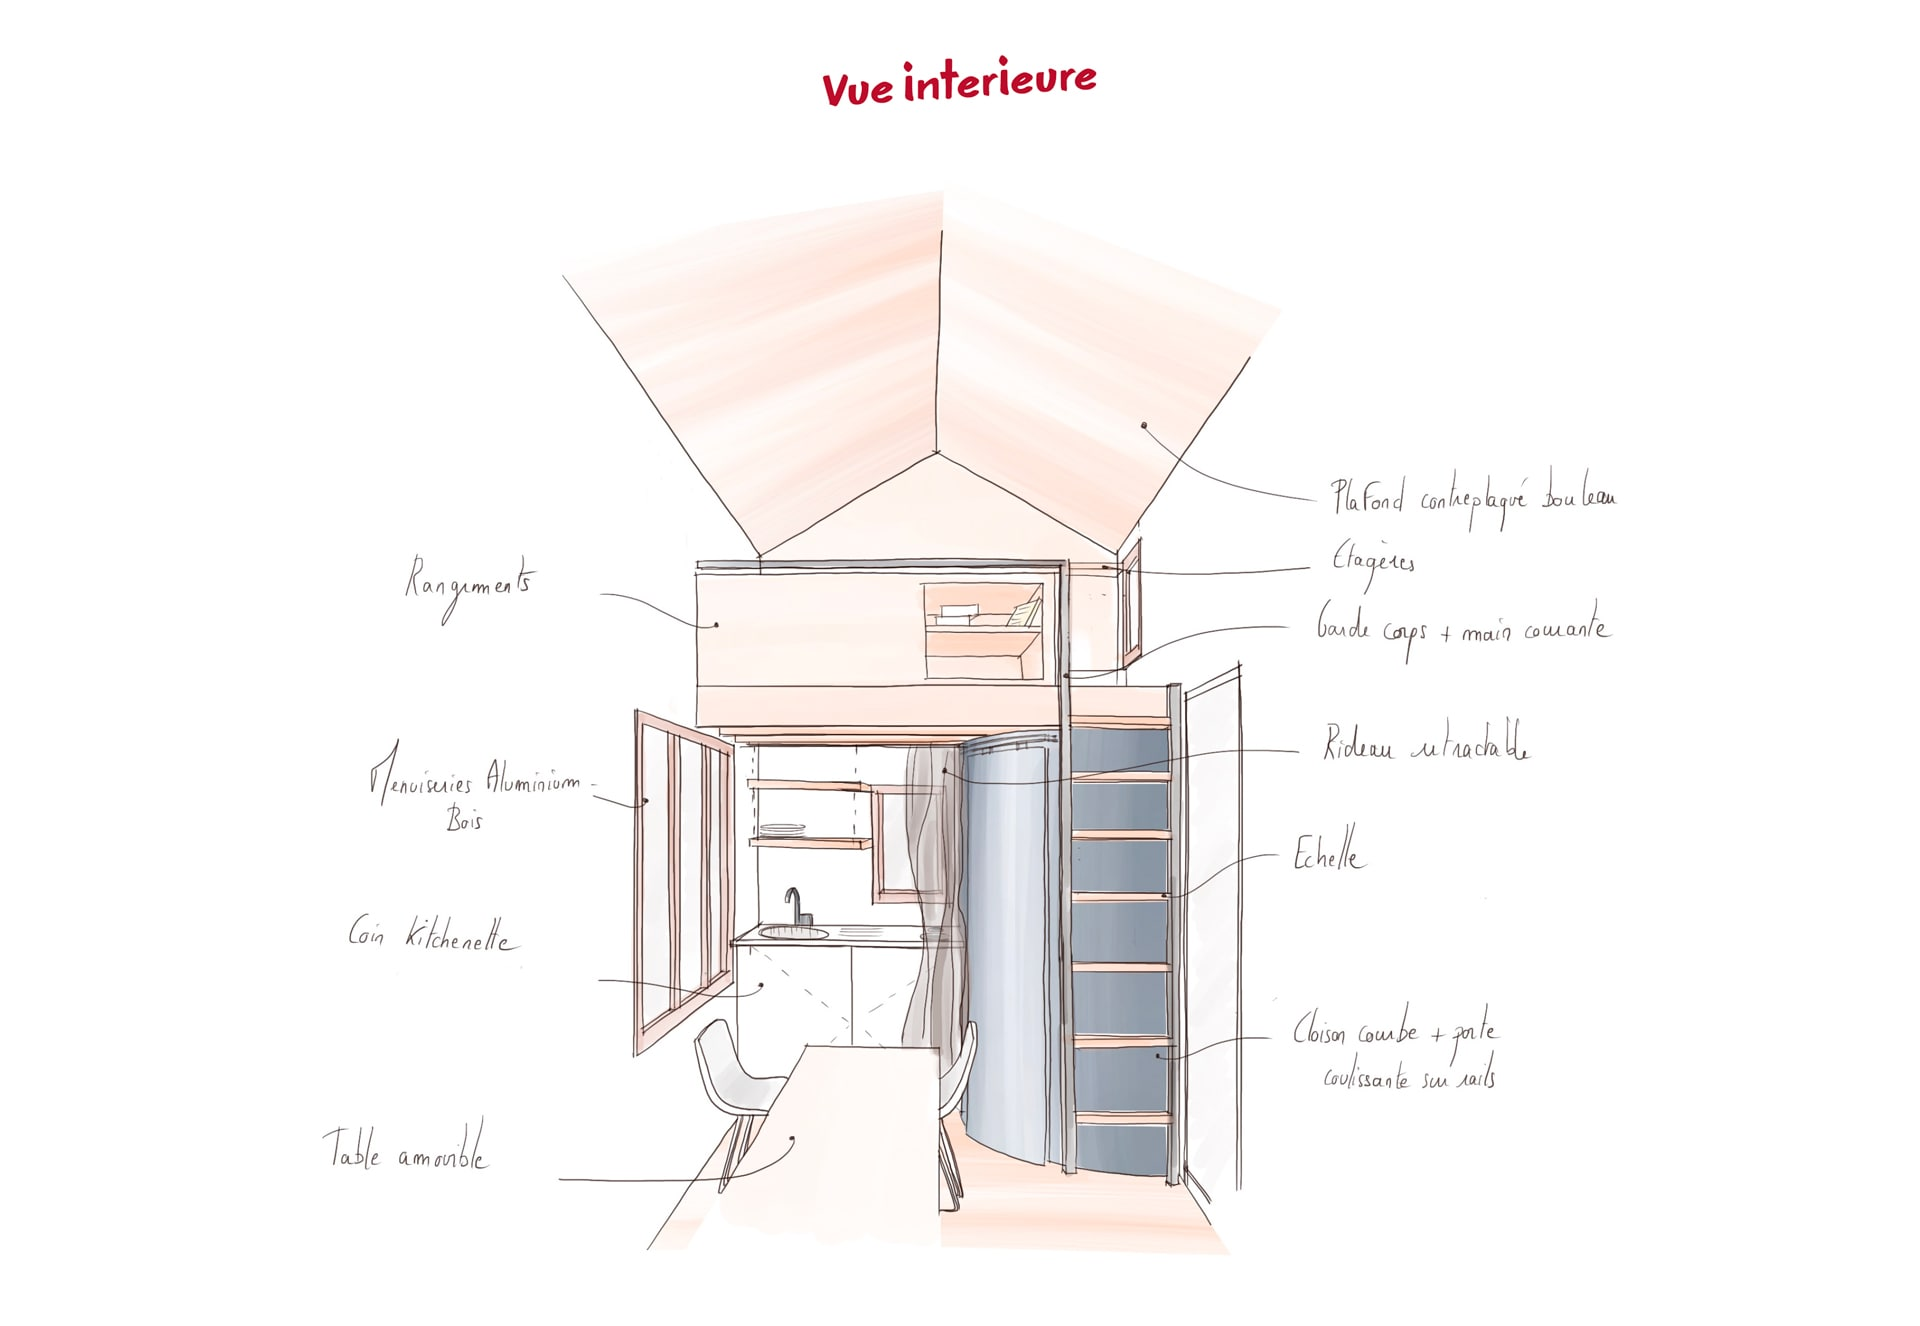 tiny-house-professionnel-office-vue-interieure